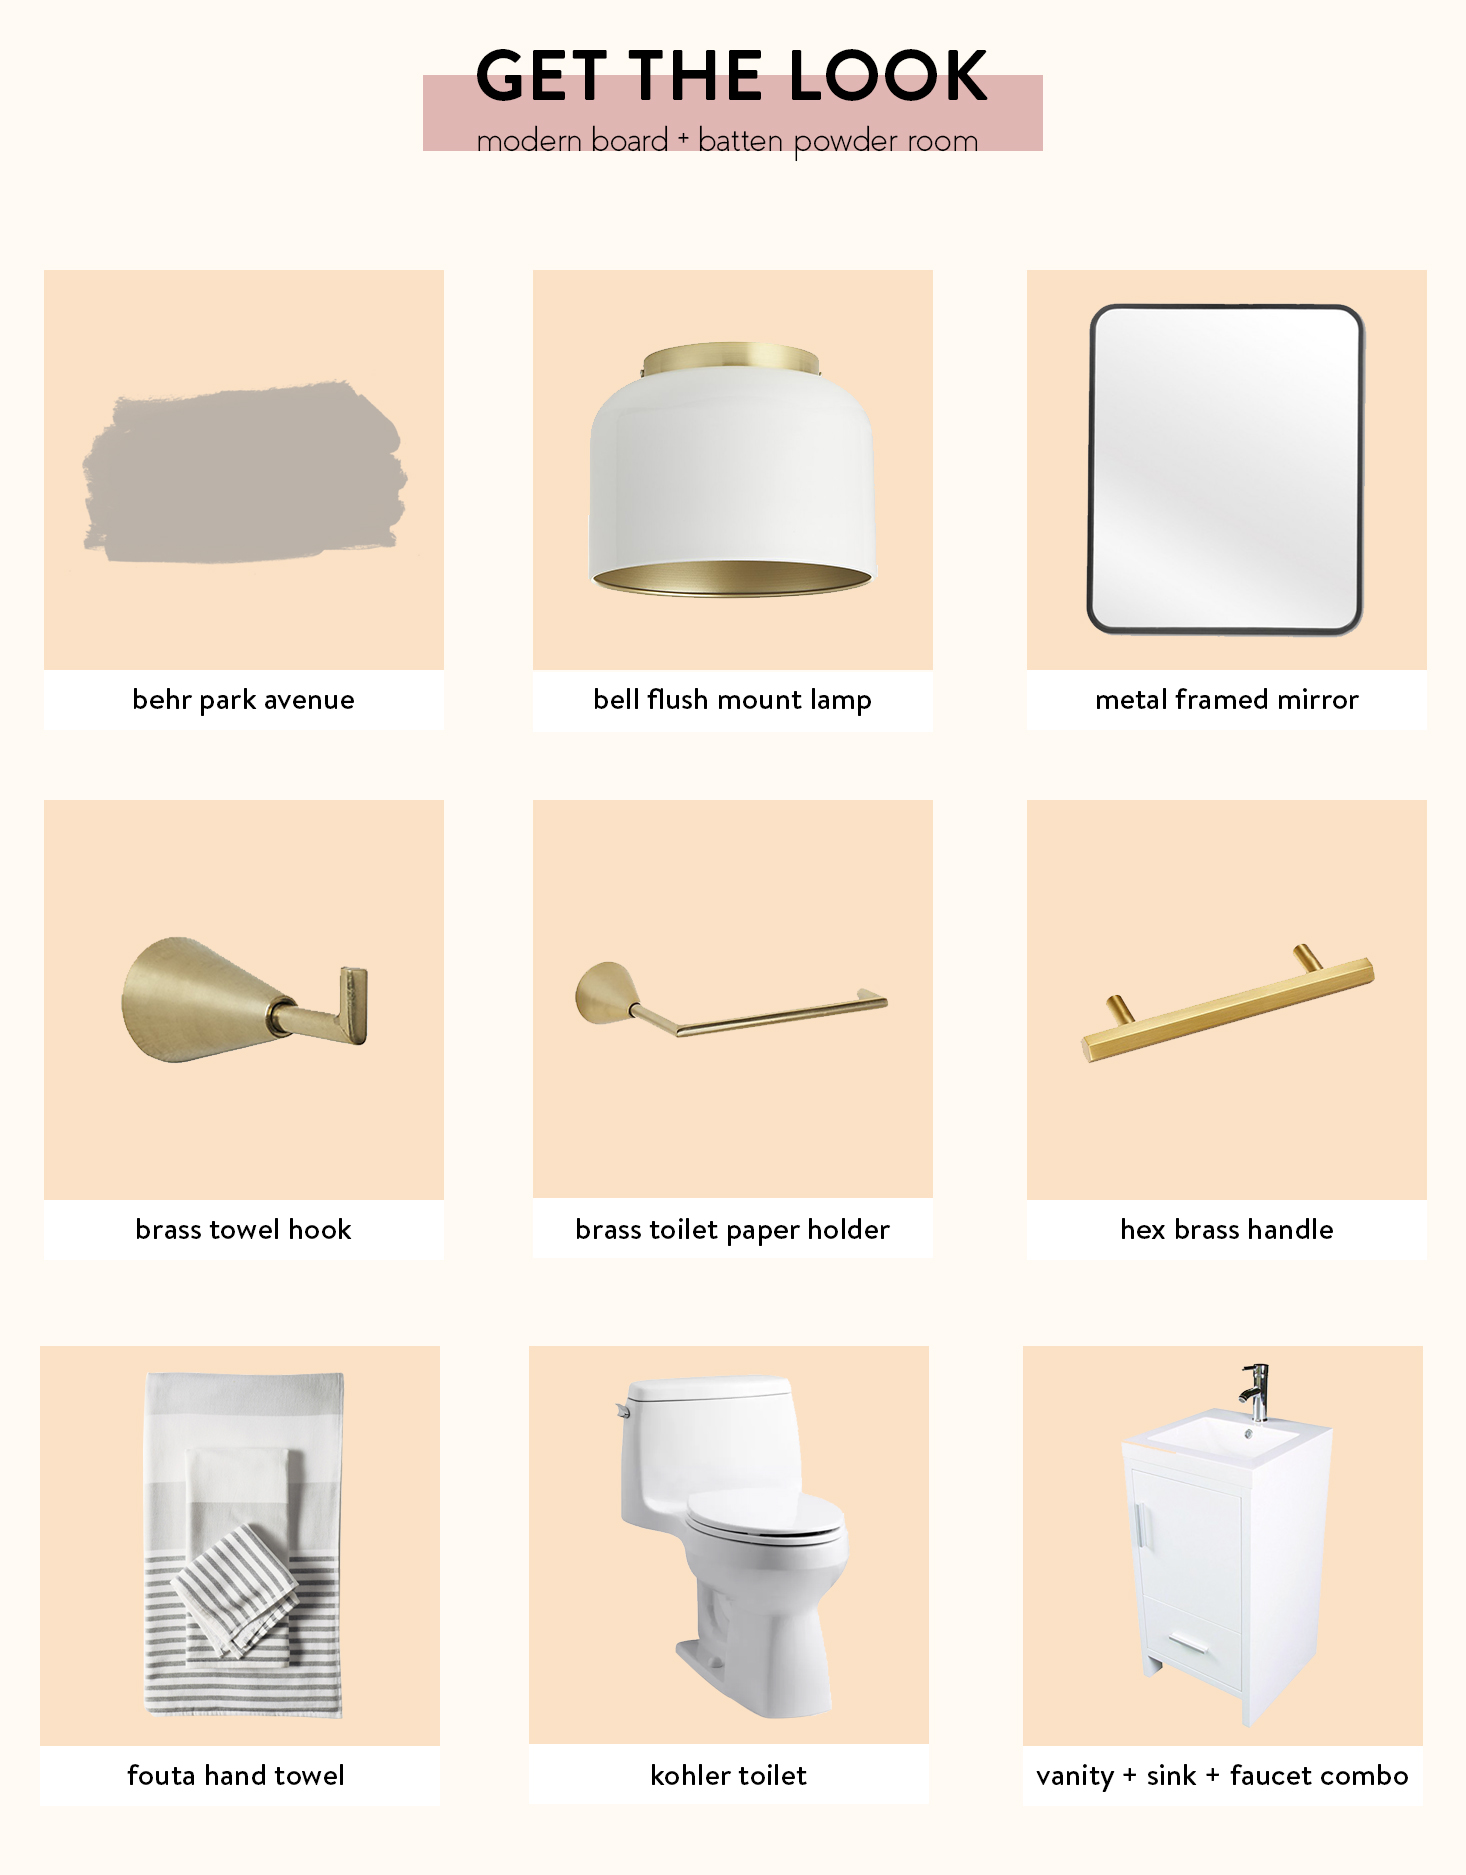 Get the Look - Modern Board + Batten Powder Room | The Sweet Beast Blog